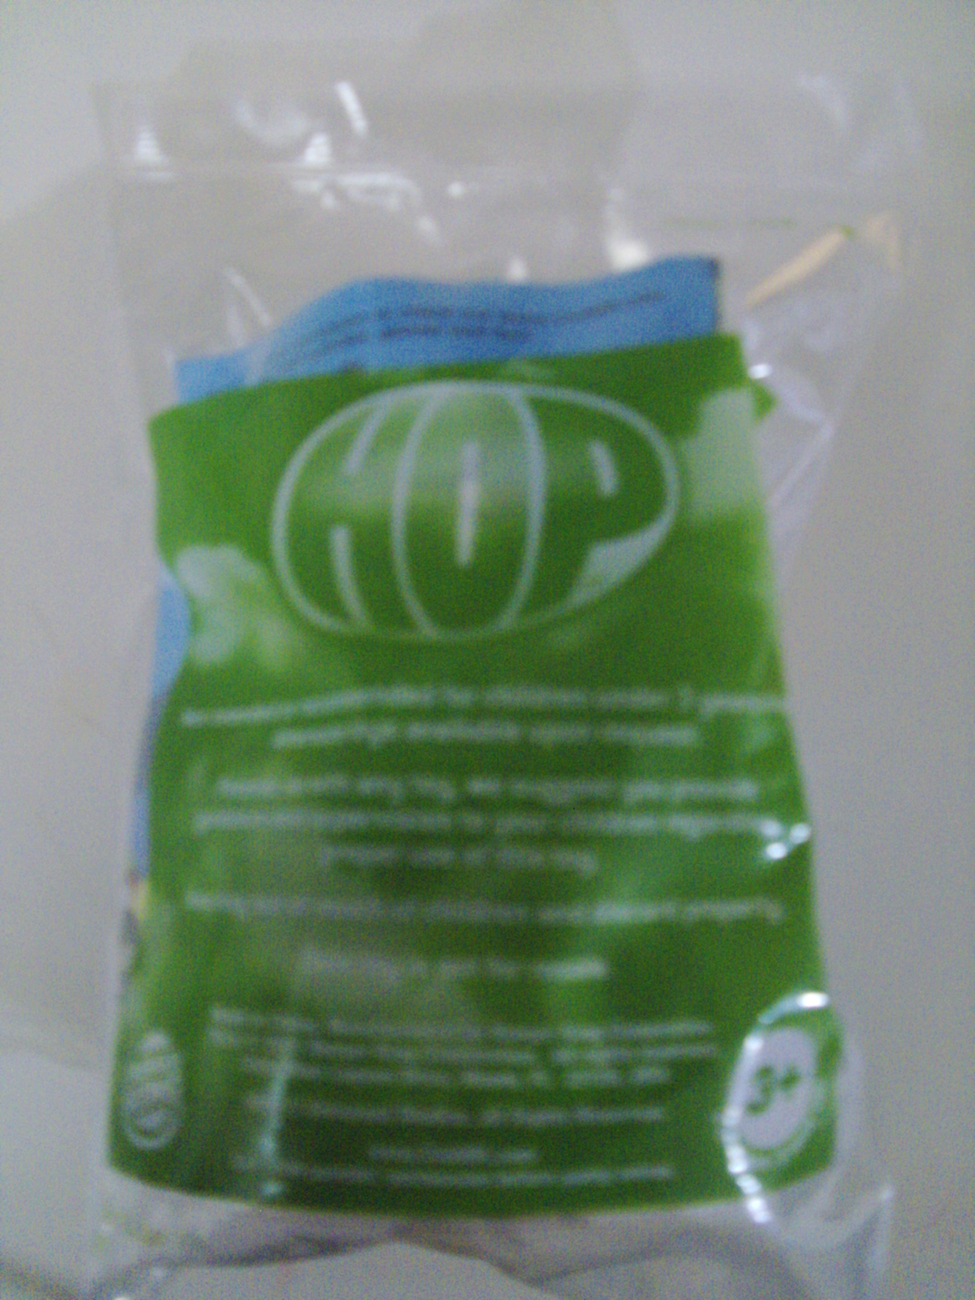 Hop Movie Drummin' E.B. Burger King toy - New